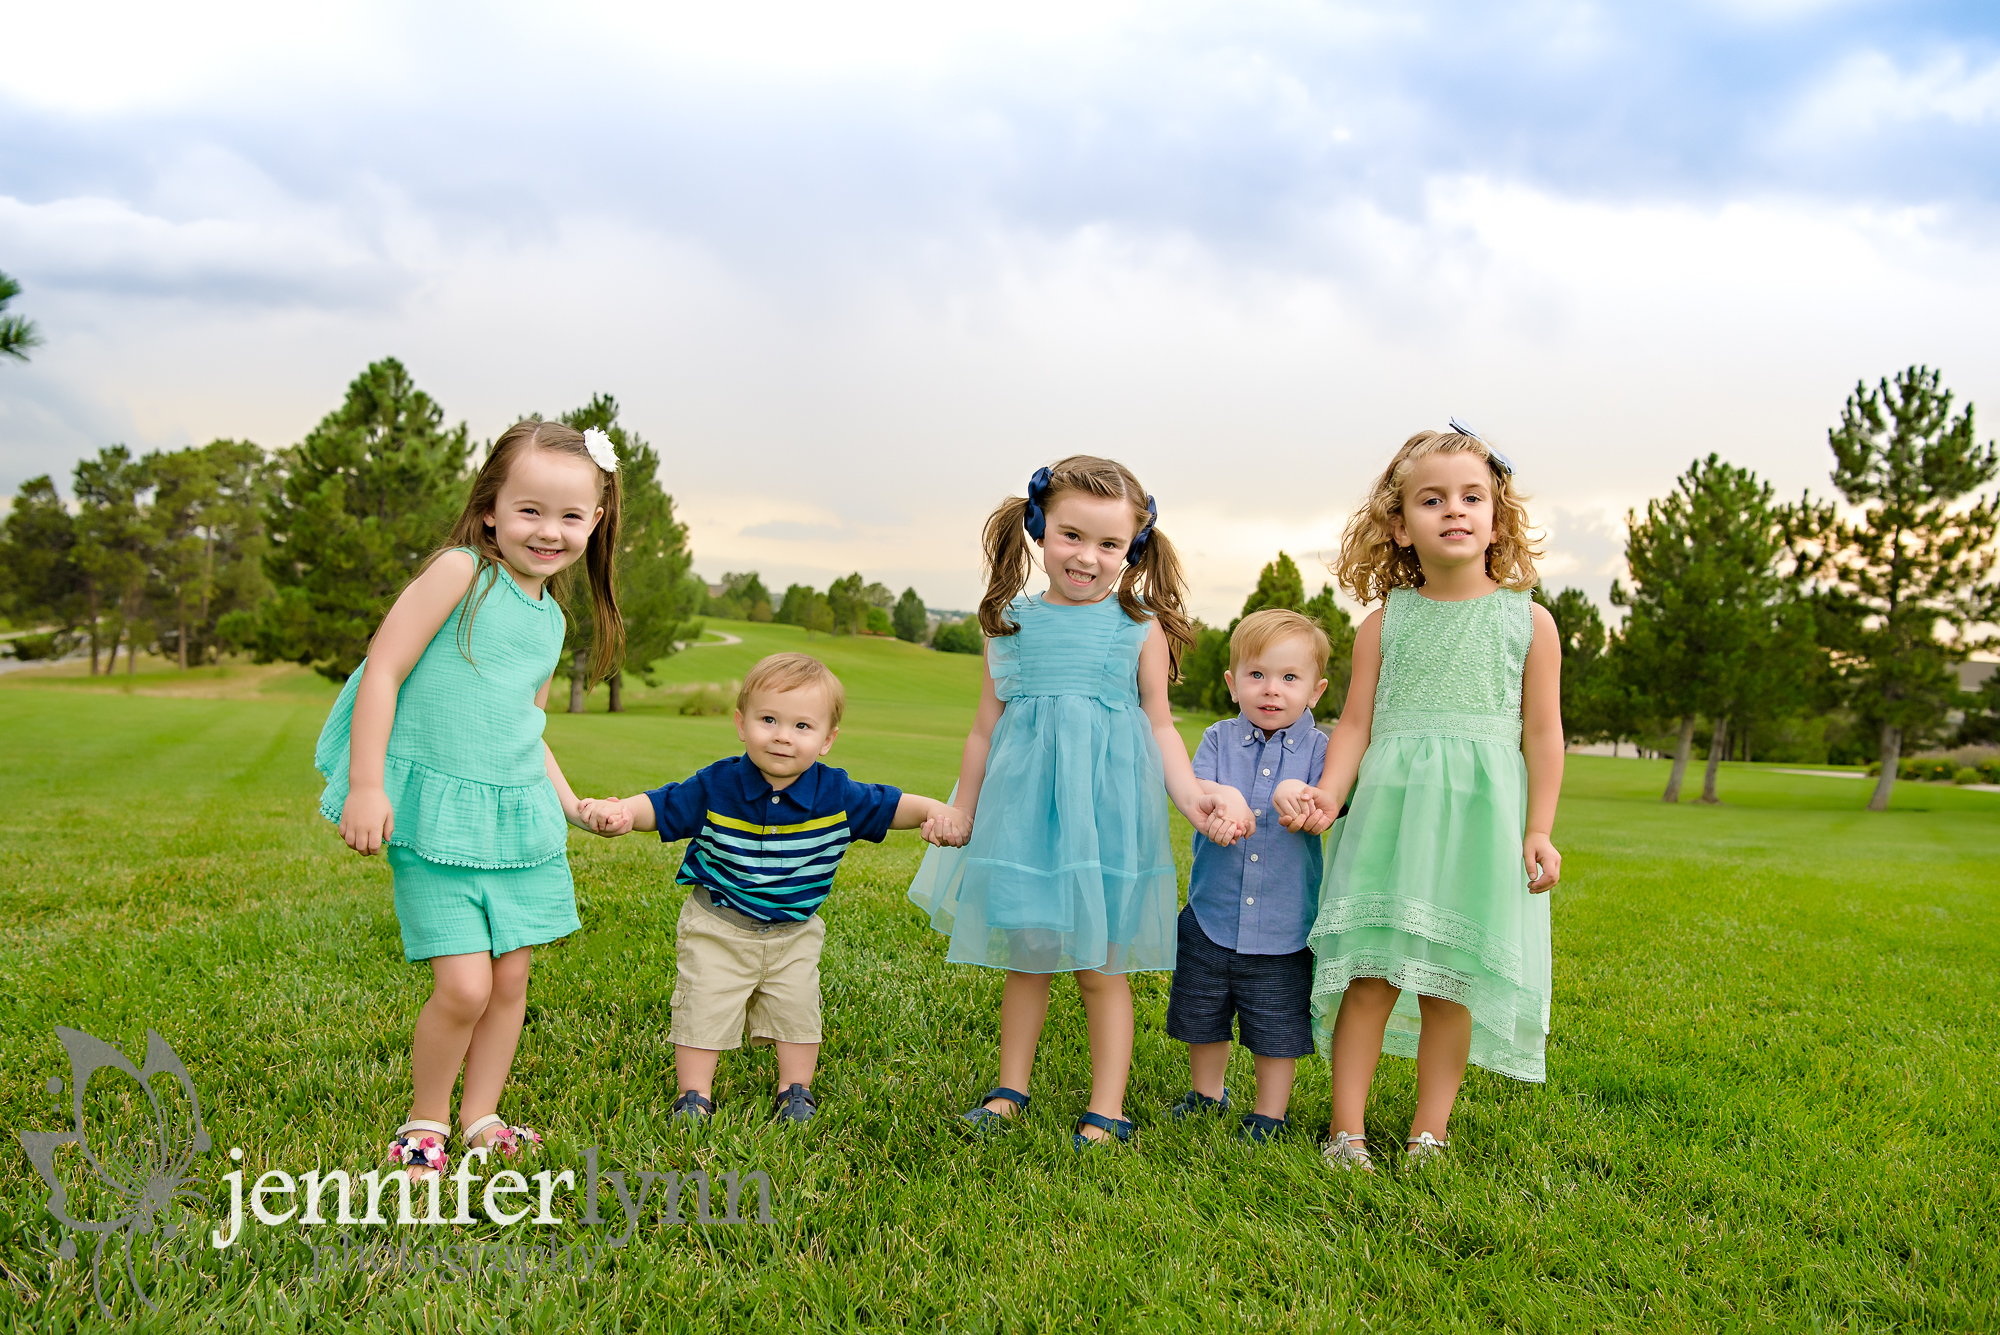 All cousins together photo outdoors